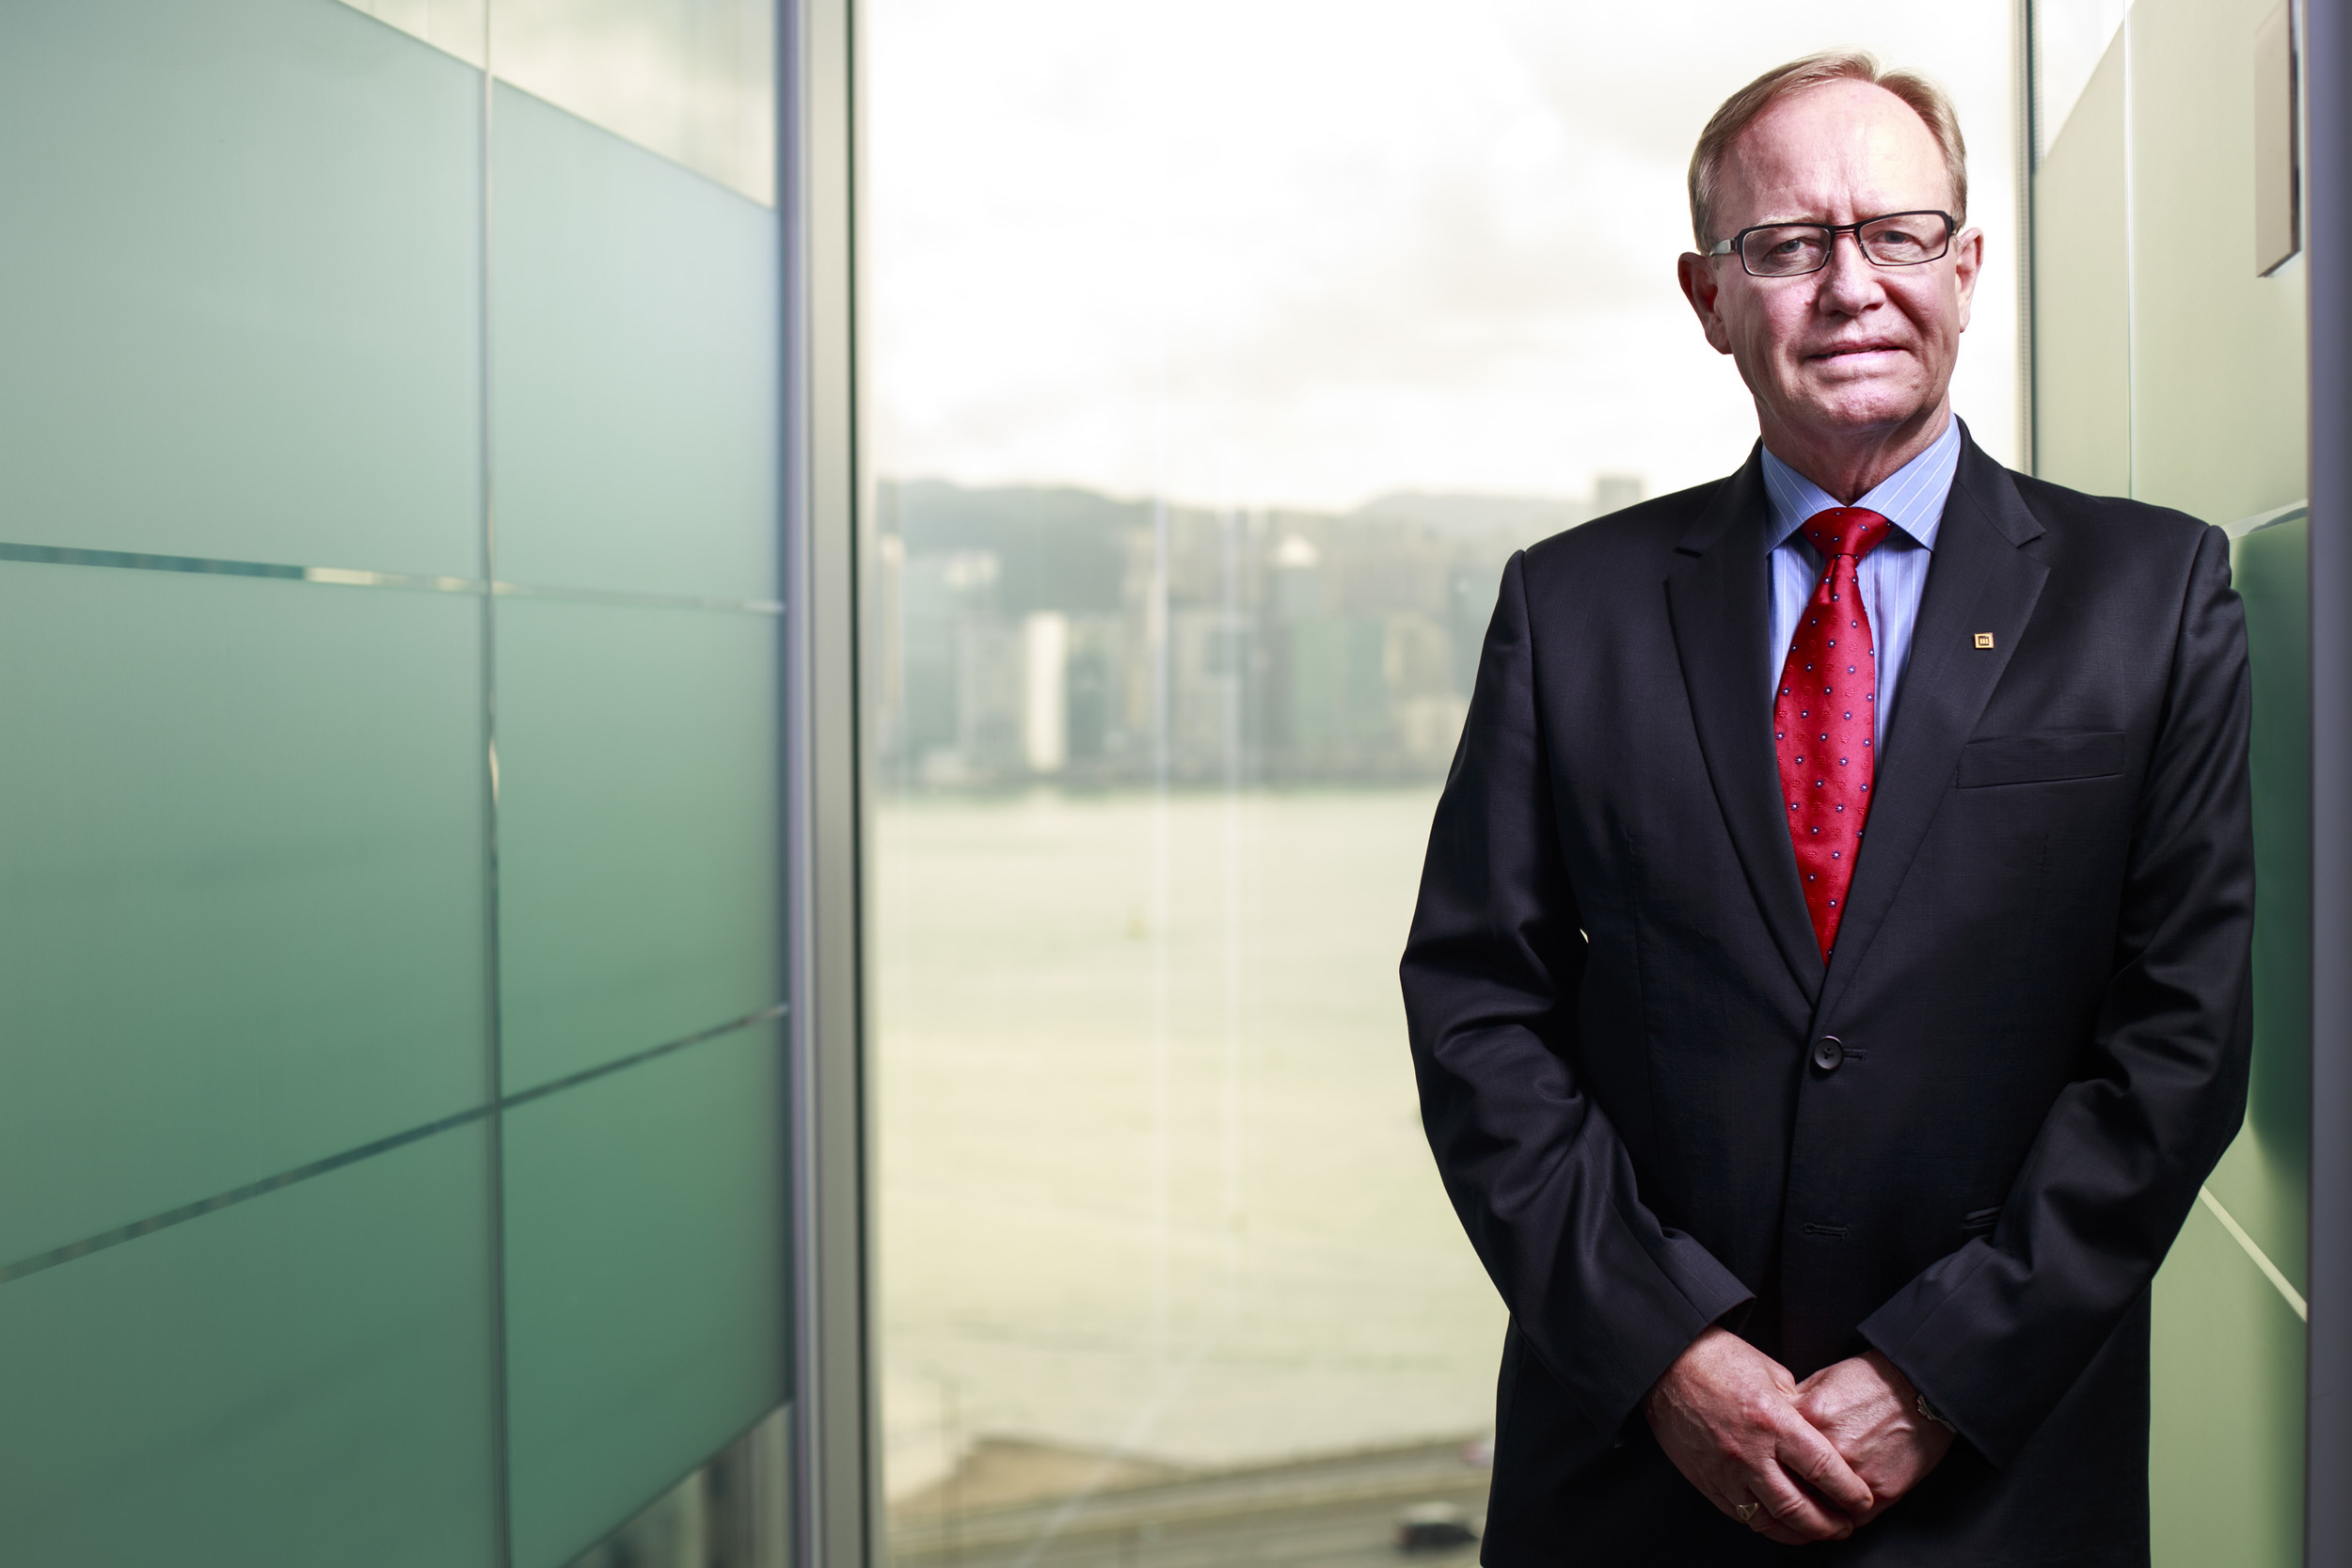 Lawrence Nutting, Chief Distribution Officer of Manulife (International) Limited